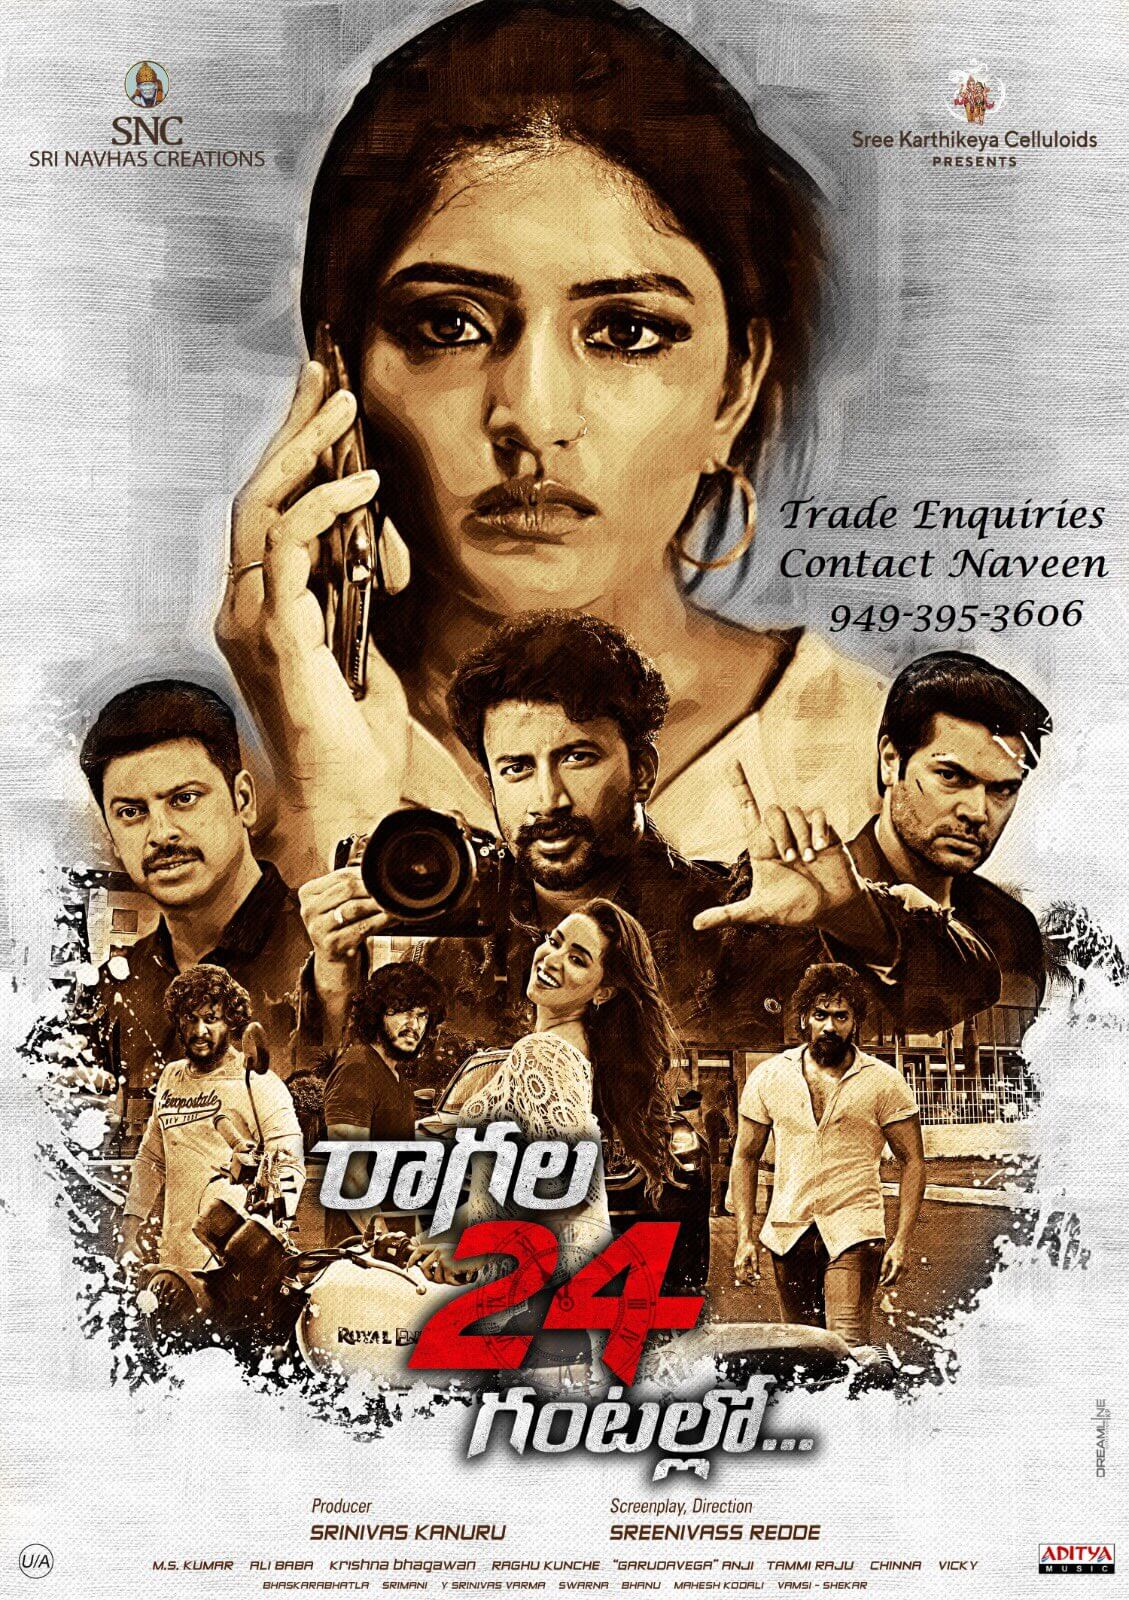 Raagala24Gantallo every reviews and ratings